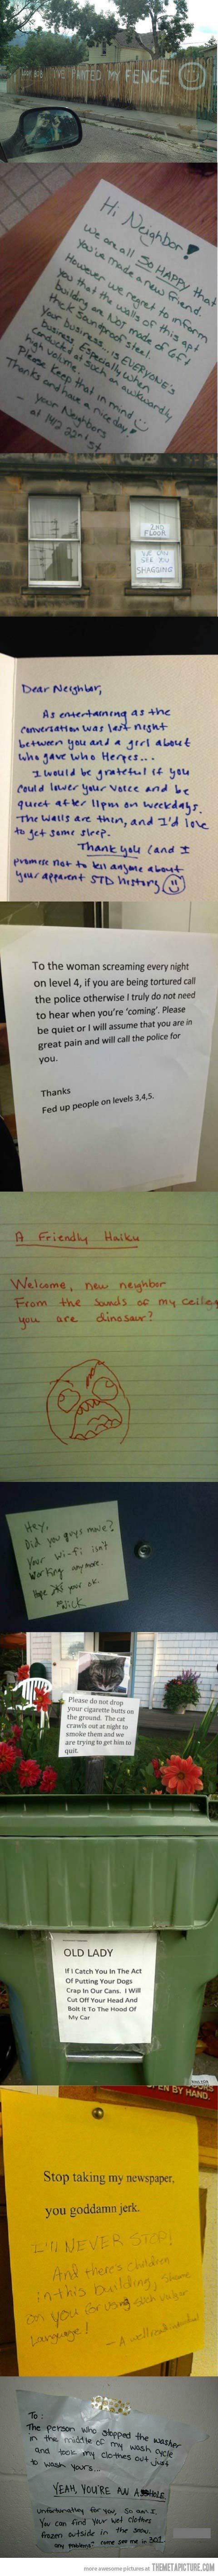 Neighbourly Love! I wish was this whitty when I was in my old apartment..